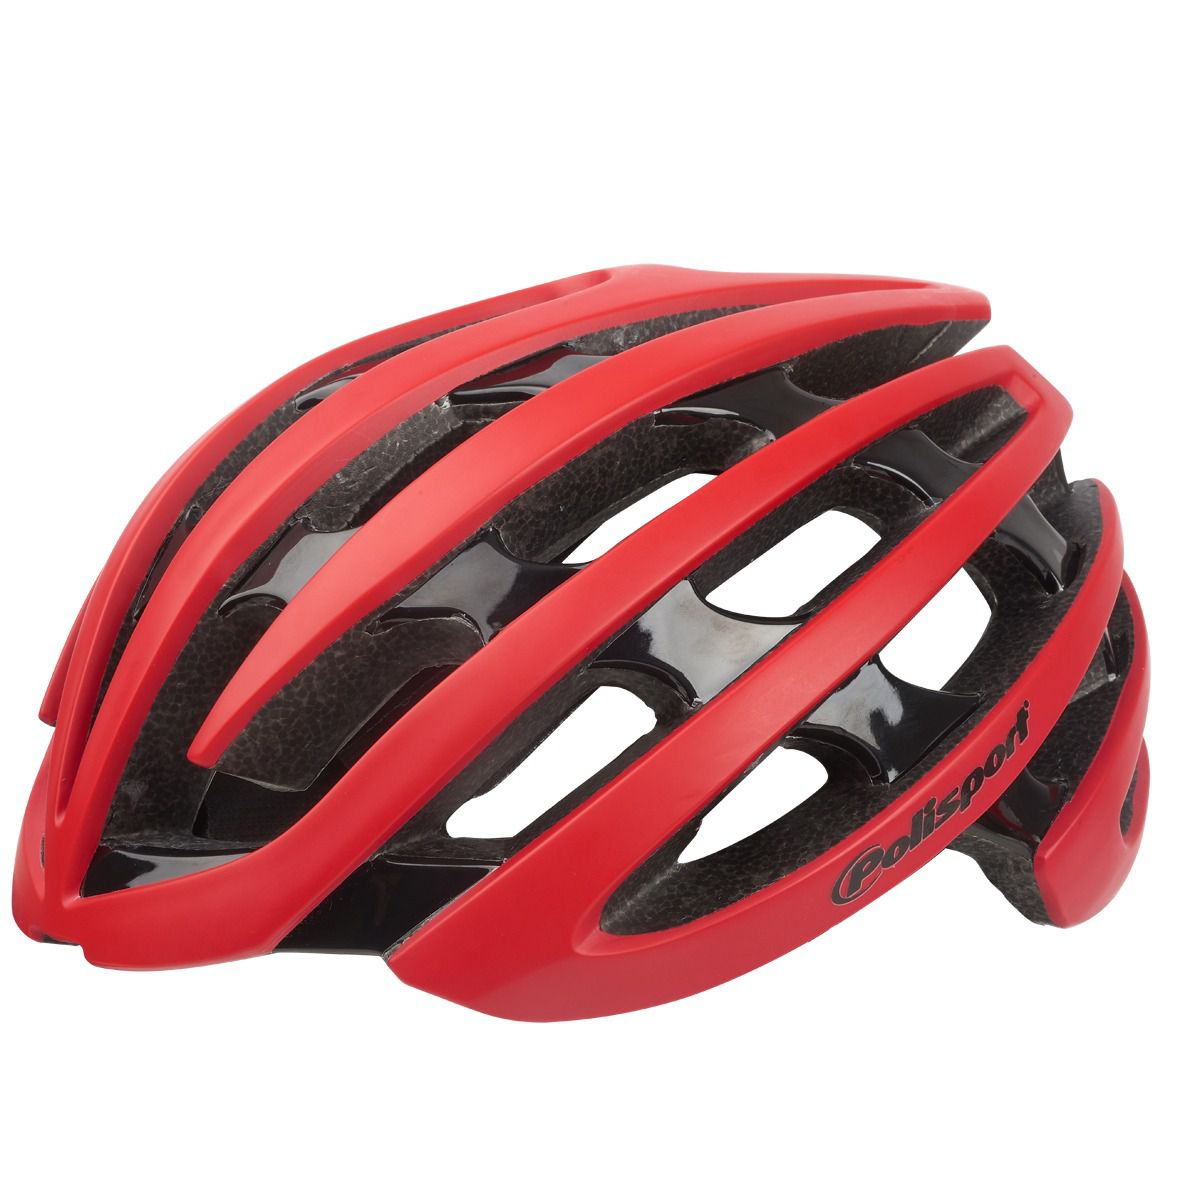 Capacete Polisport Light Road - Tam G